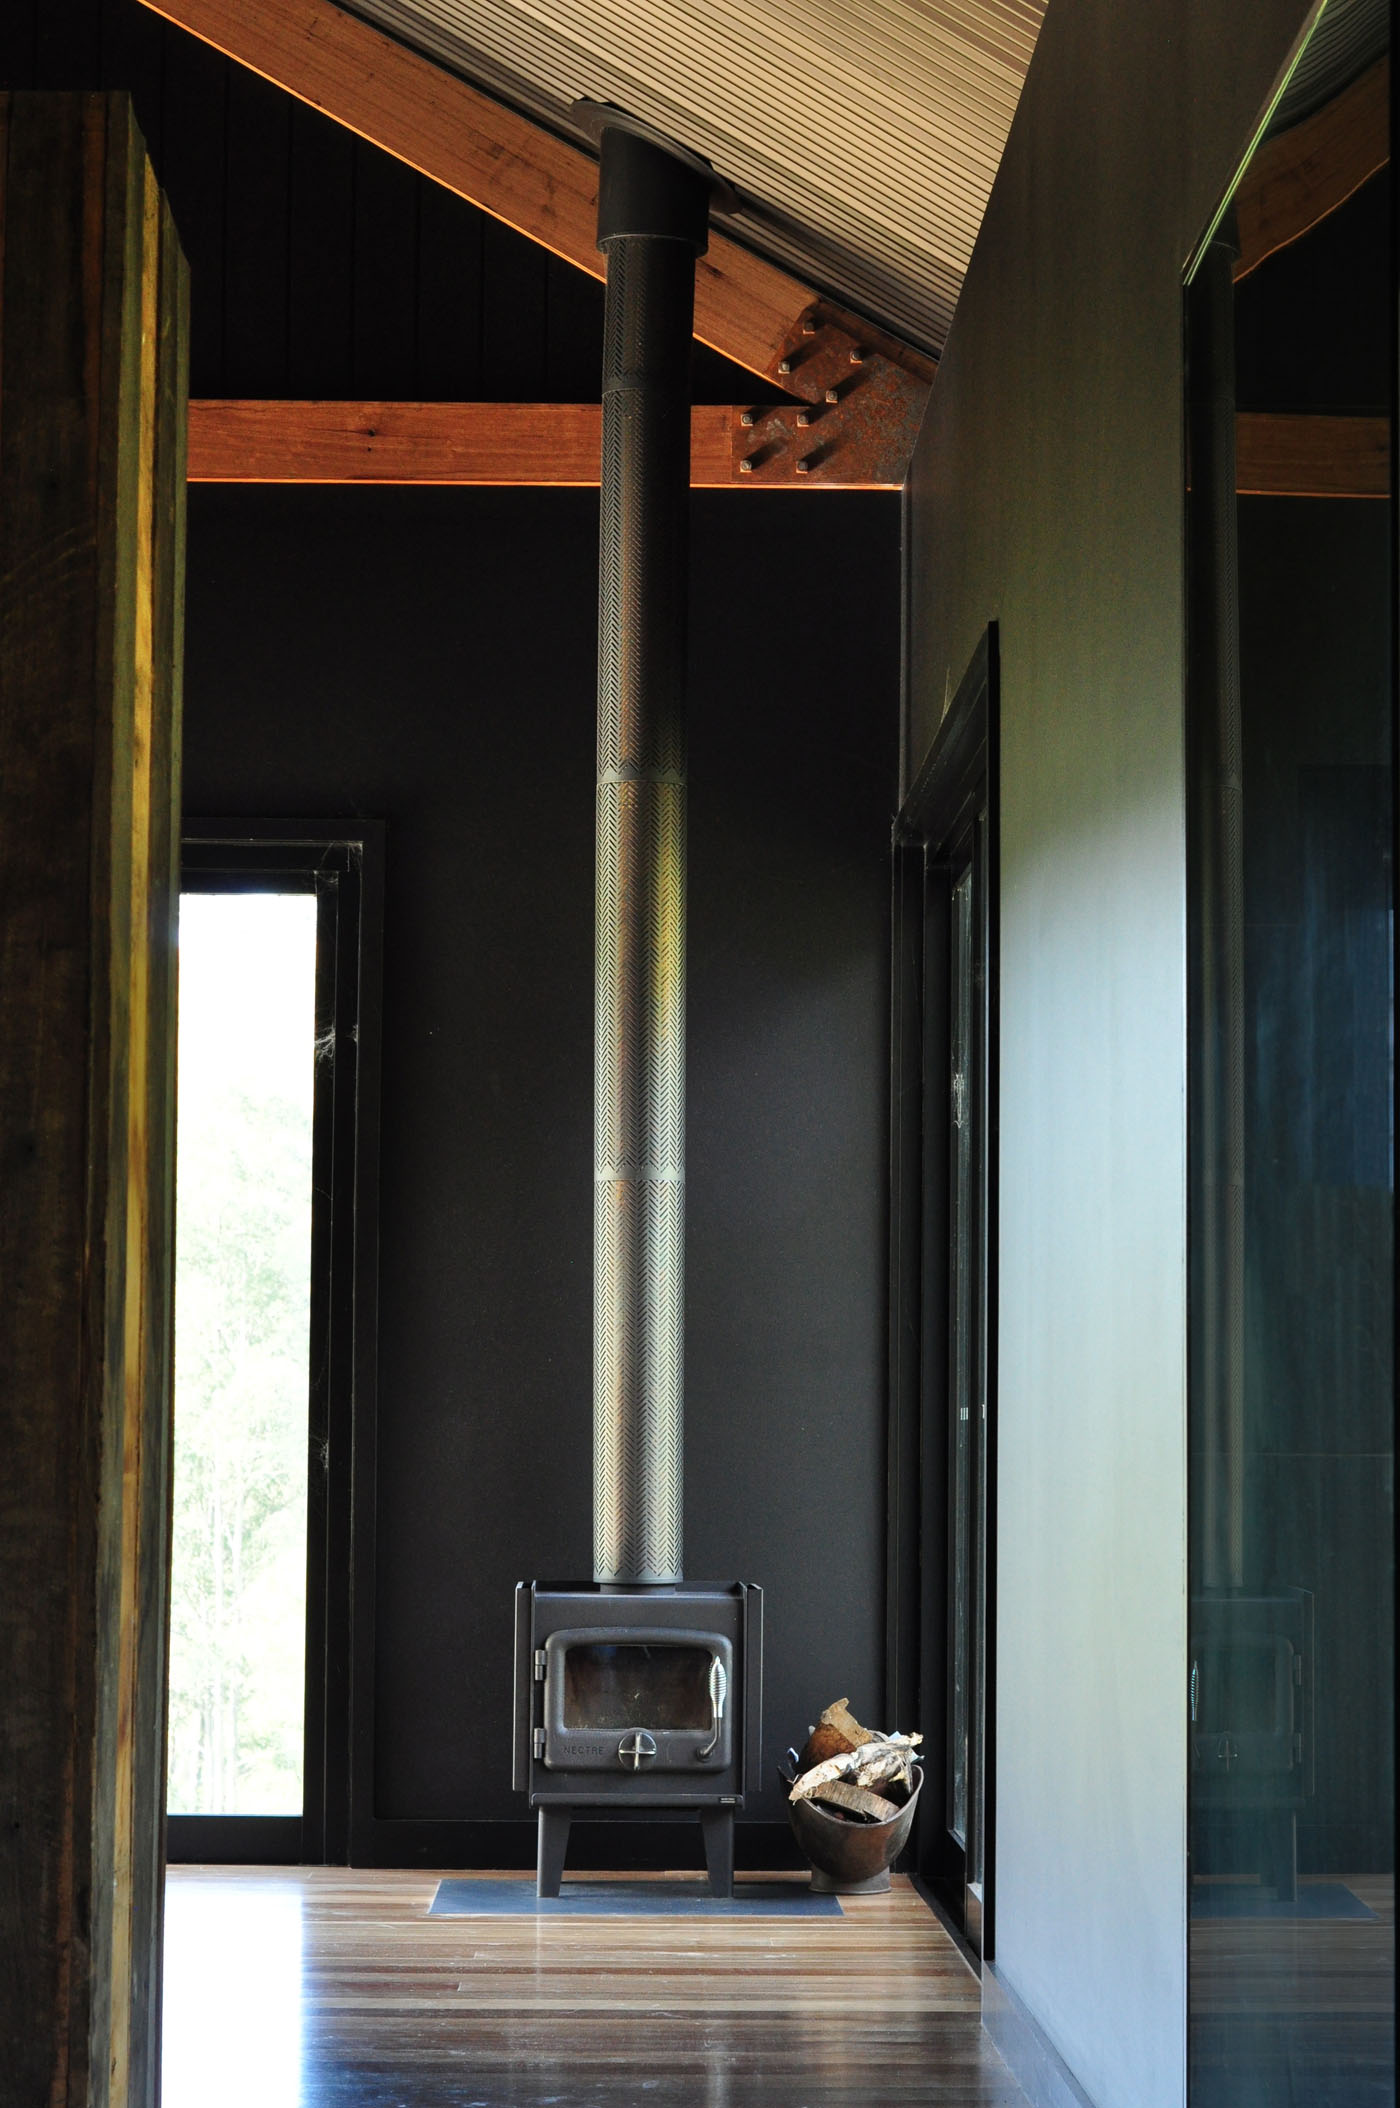 Gloucester Farmhouse by award winning residential architecture firm Sam Crawford Architects. Black powder coated and stainless steel fireplace adds to the industrial feel of the interior.